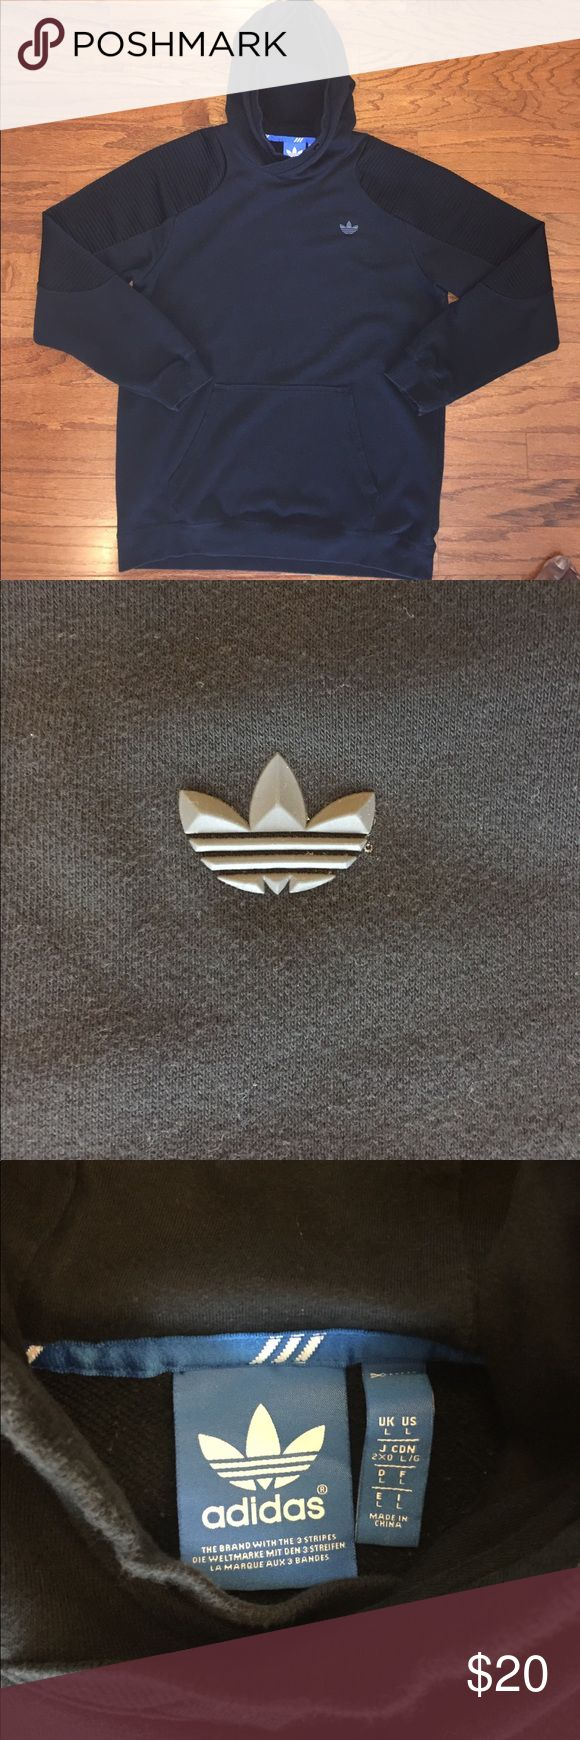 """Adidas Pullover Hoodie Sweatshirt Good condition, some normal wear, missing the drawstring, black color with a charcoal colored raised Adidas logo, textured polyester material on sleeves, main part made of 60% cotton and 40% polyester, sleeve inserts 100% polyester and hood lining 100% cotton, men's size large, measurements are about 23"""" pit to pit, 30"""" top to bottom and 25"""" shoulder to cuff. Great looking Hoodie...with a very unique design! Bundle for extra discount! adidas Shirts…"""